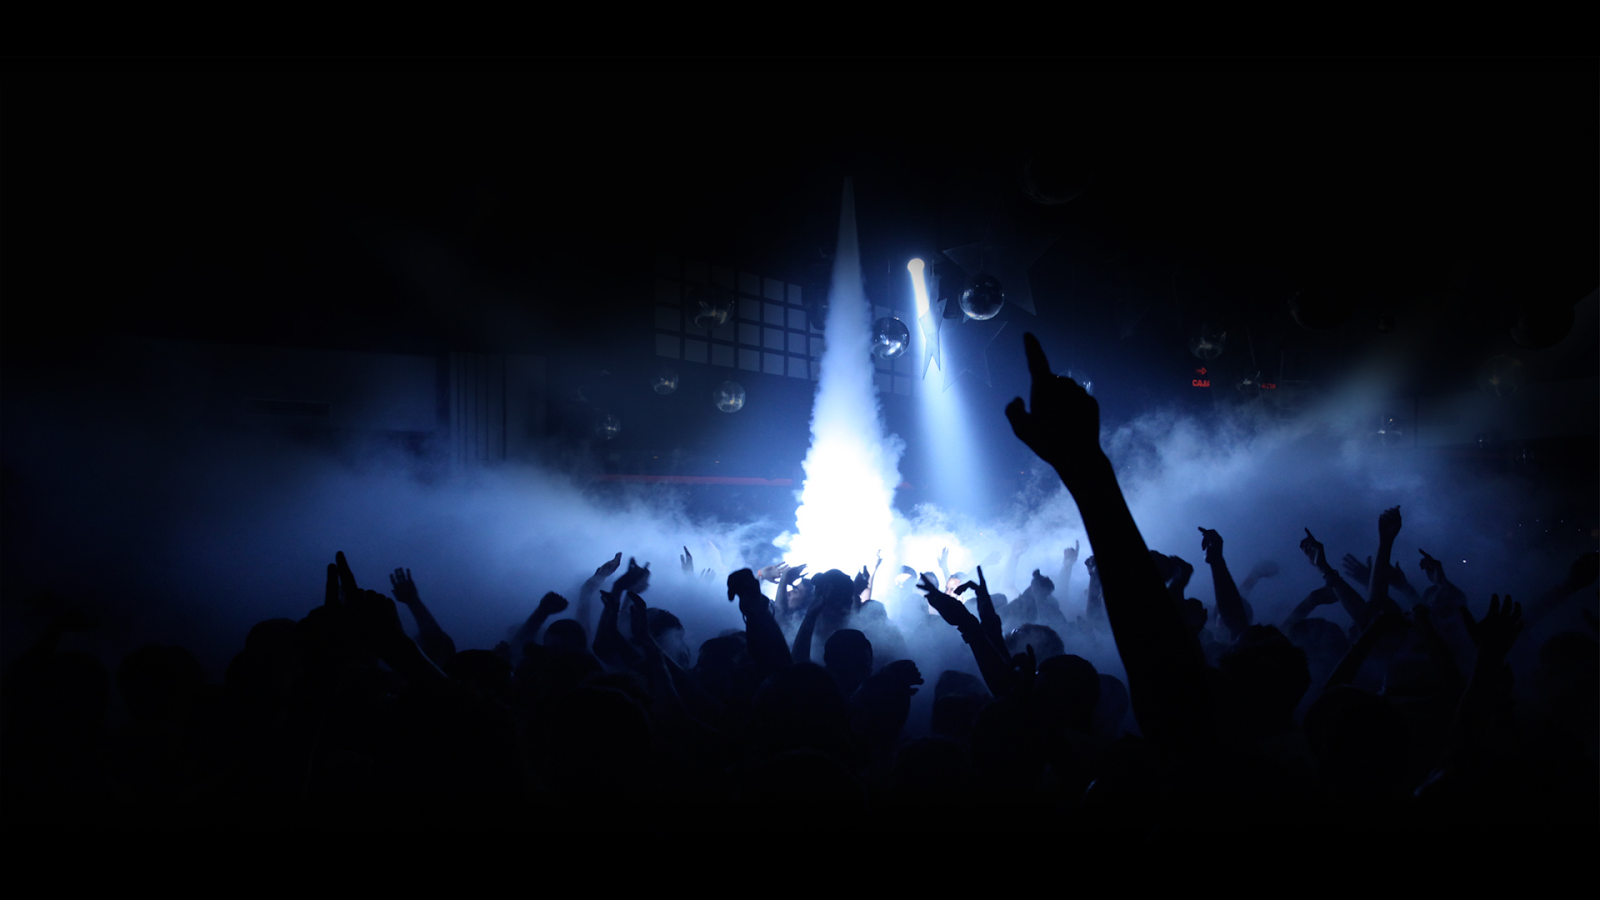 Rave Backgrounds Hd Background lit. foreground lit